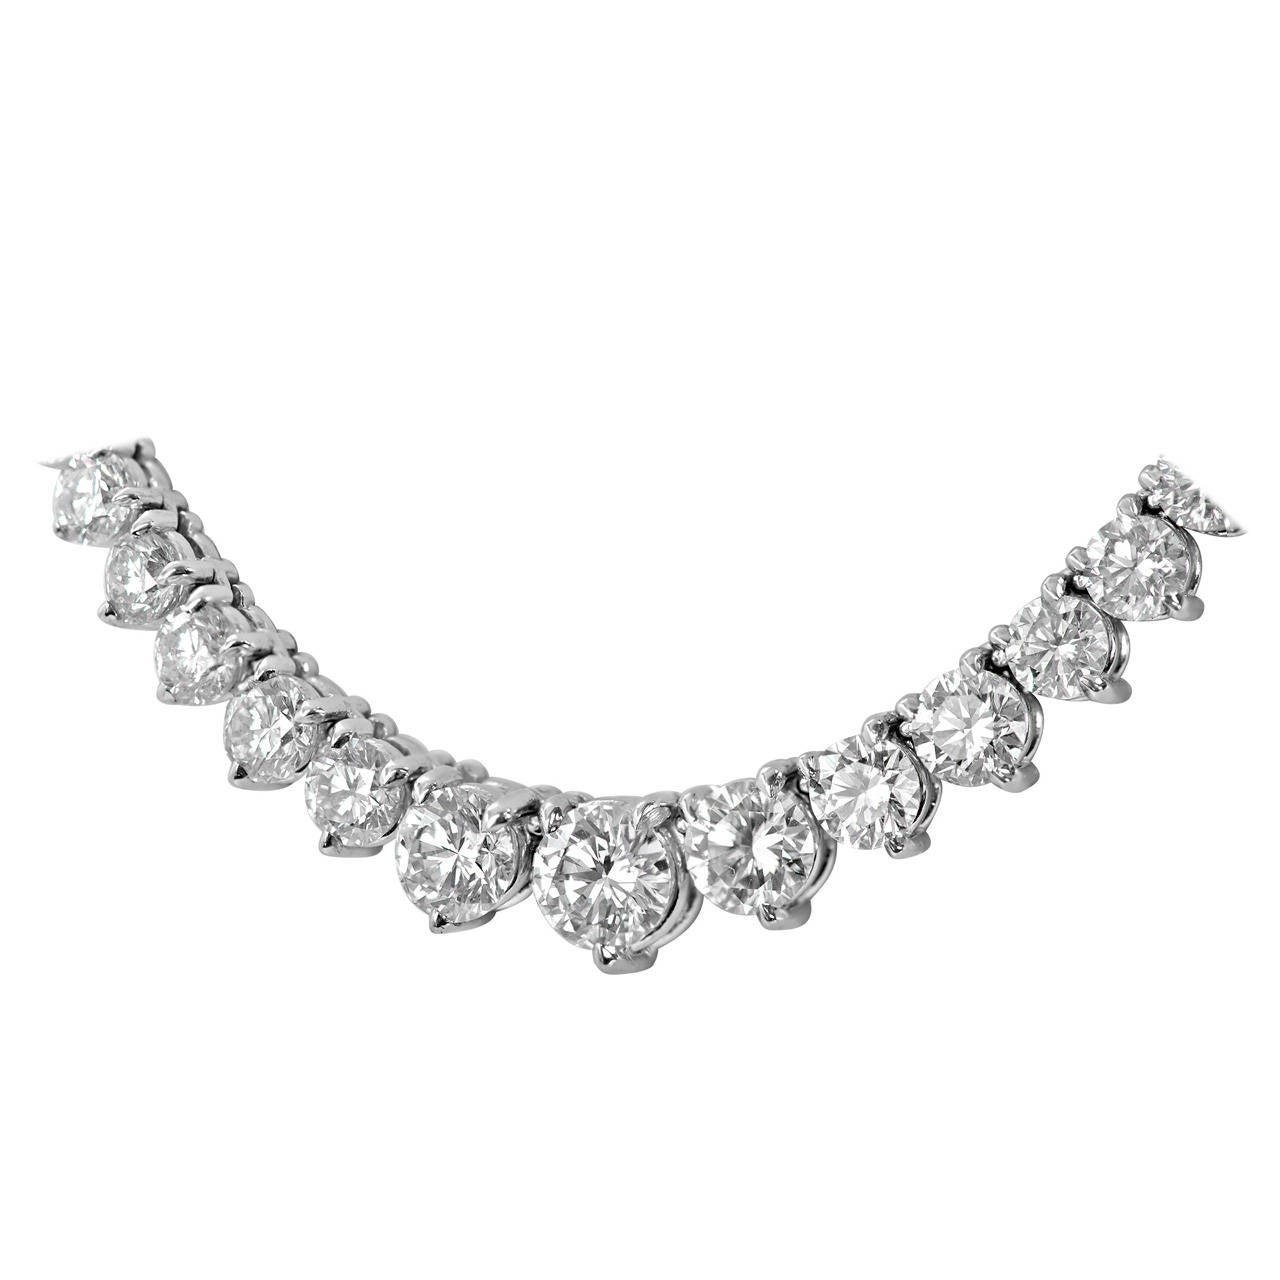 23.08 Carats GIA Cert Diamonds Graduated Riviere Necklace For Sale